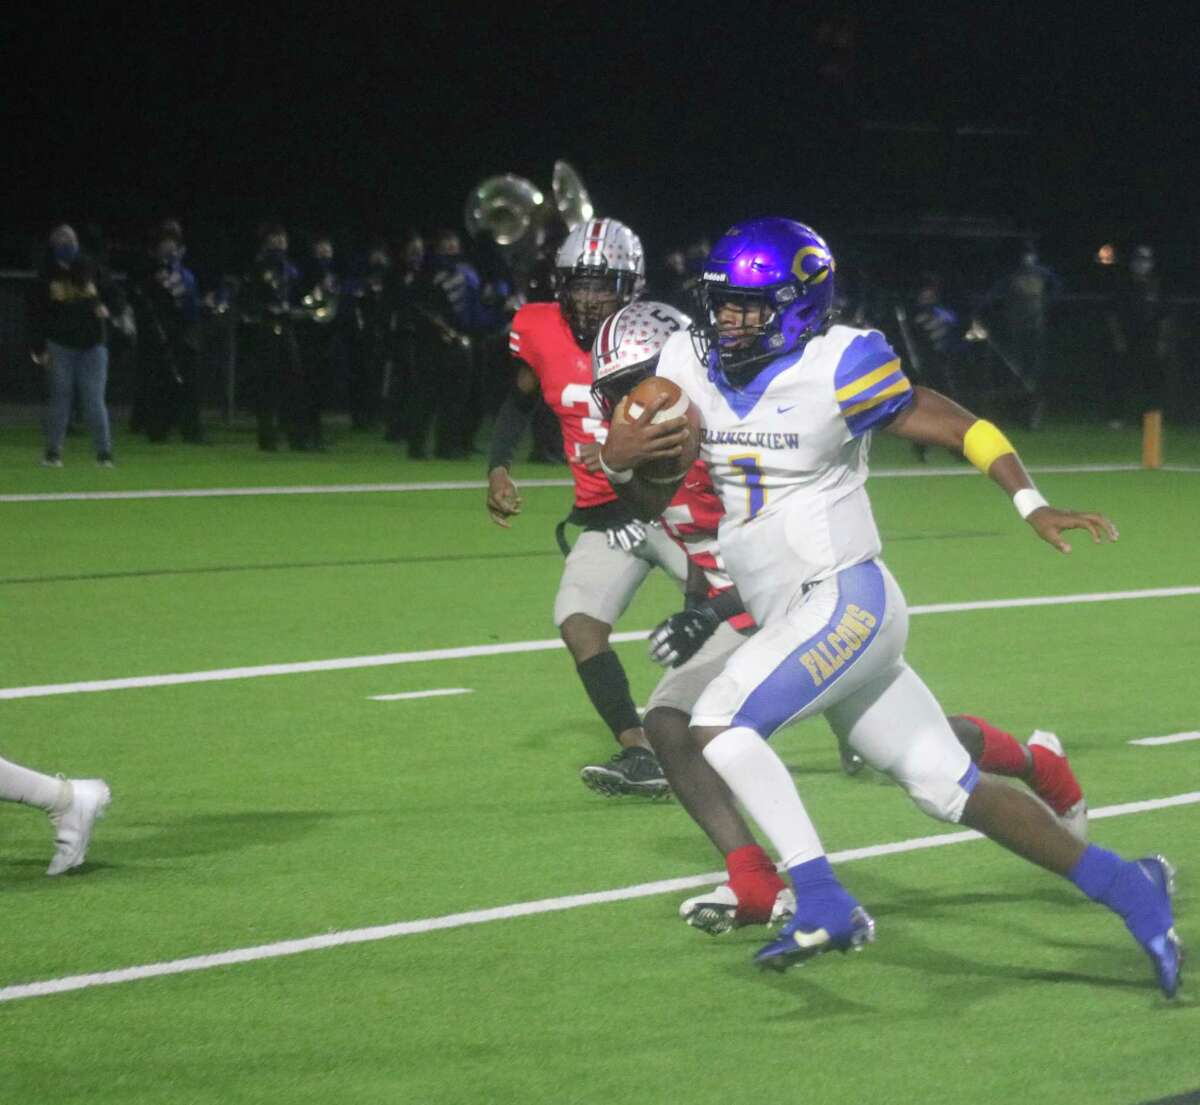 With no time left on the first-half clock, Channelview's Demetrius Charles scores on an 18-yard run that got the Falcons within 16-14 for halftime. Charles threw for 275 yards and four touchdowns by night's end.